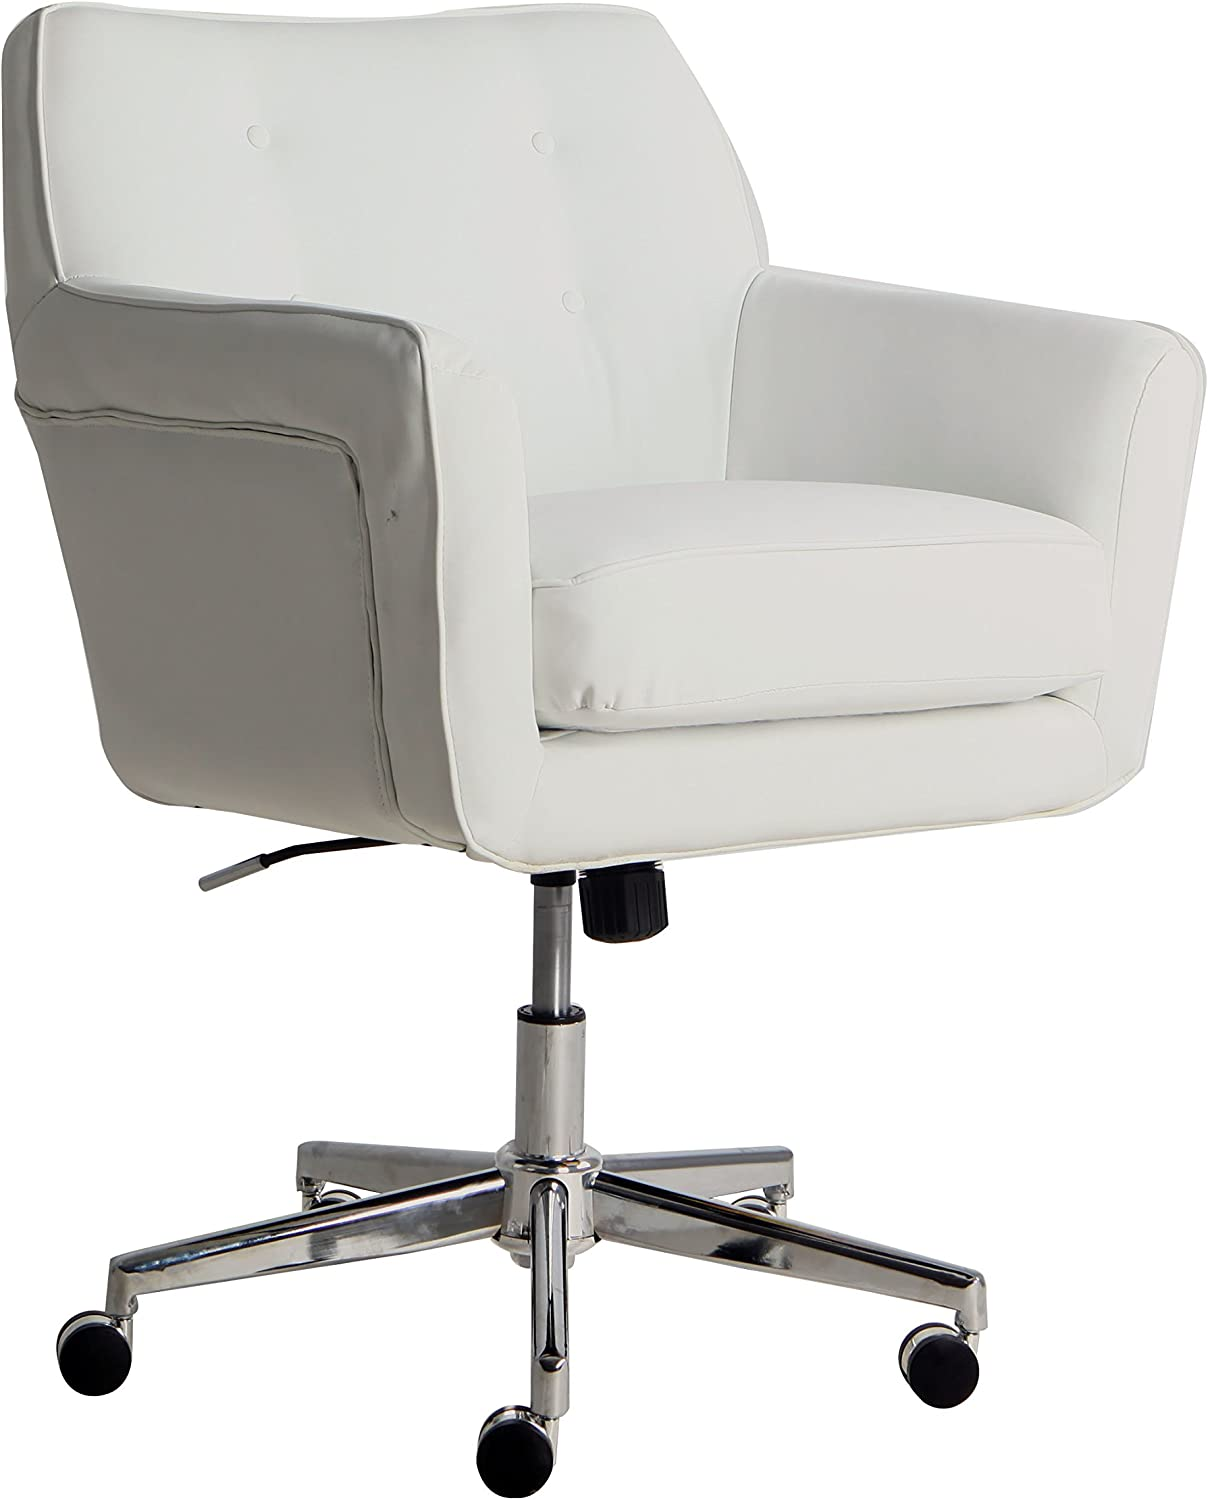 Serta Style Ashland Home Office Chair, Clean White Bonded Leather